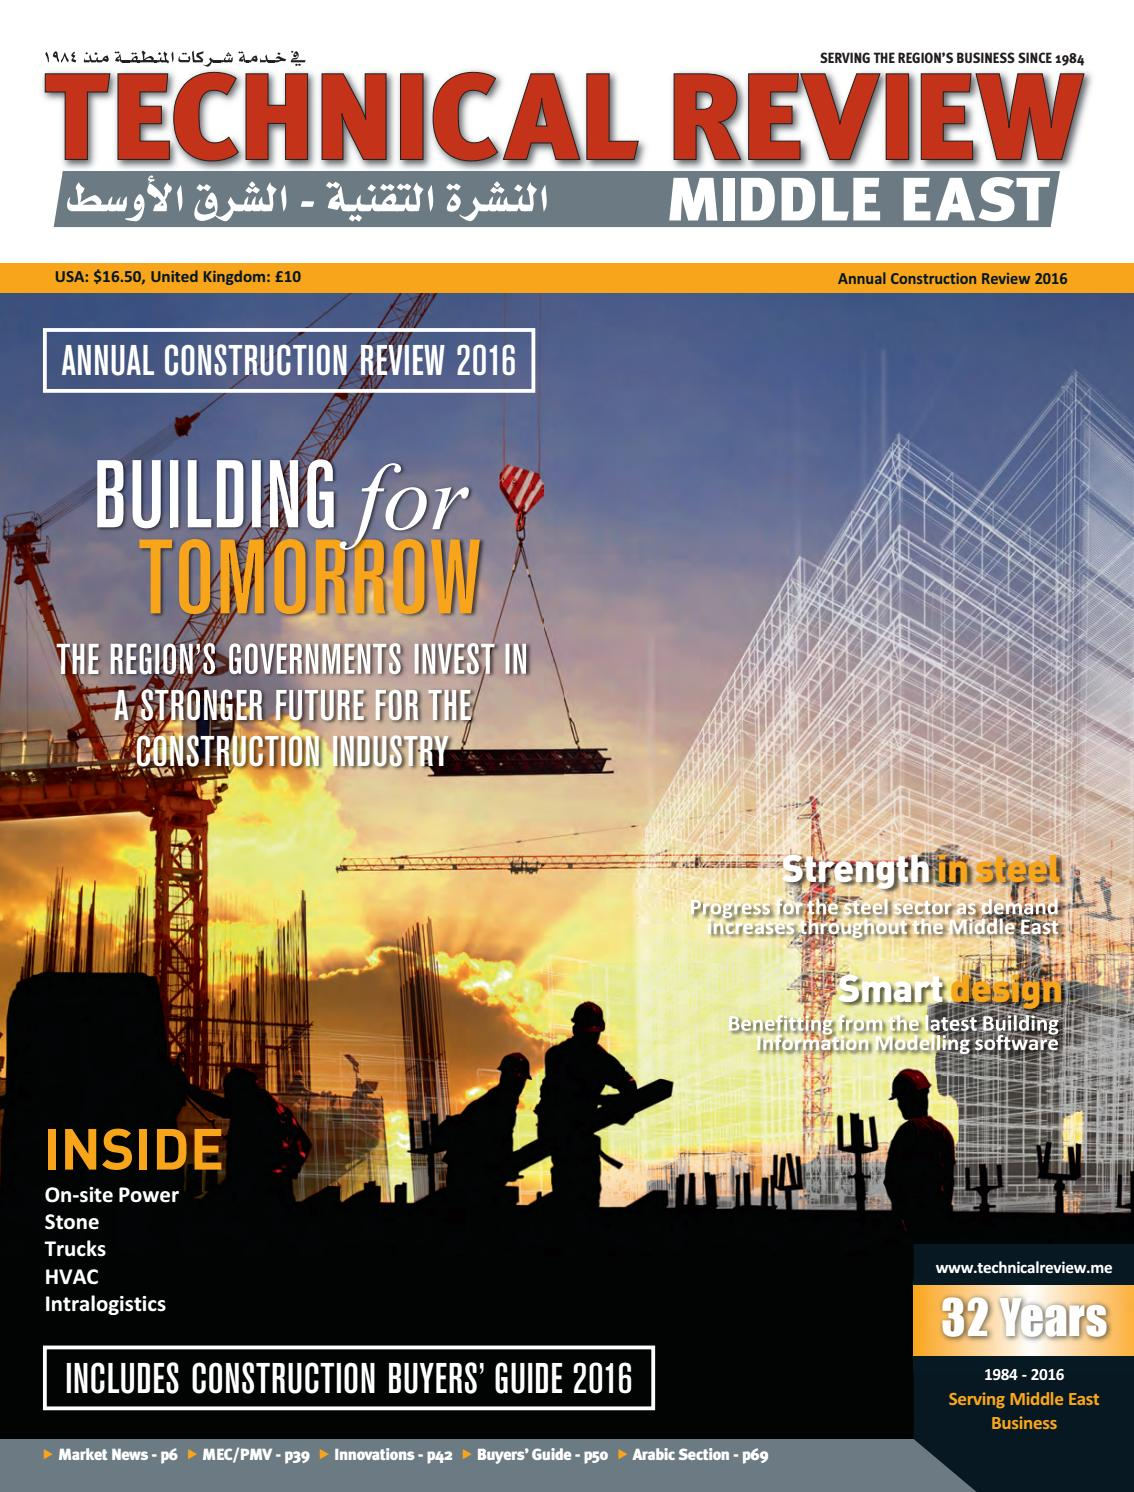 Technical Review Middle East - Construction 2016 linked by